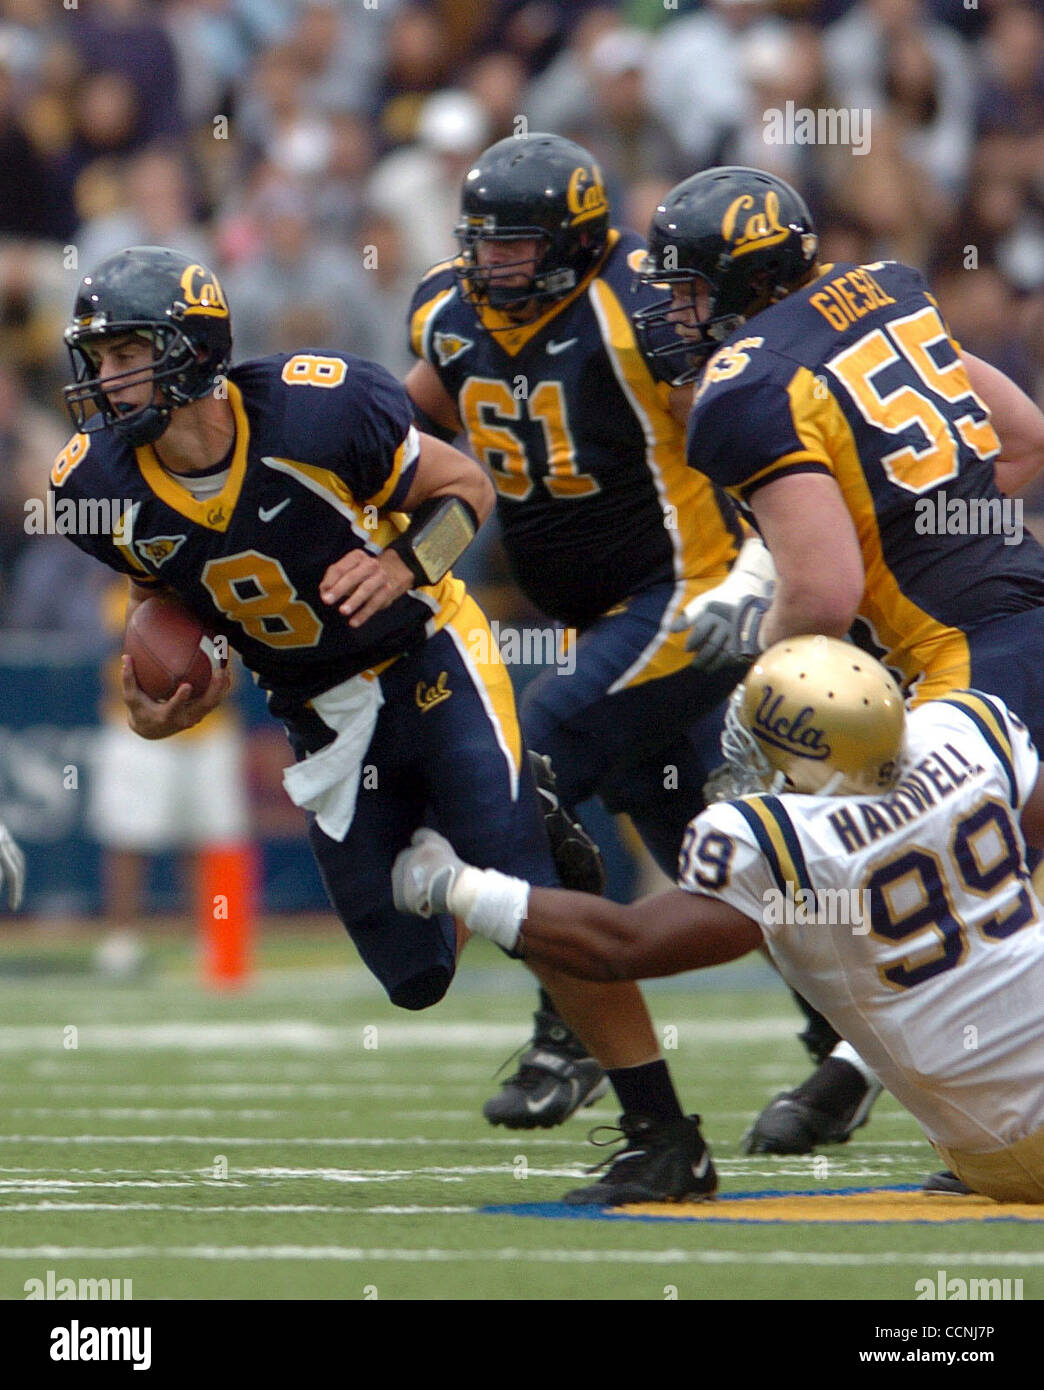 Cal Quarterback Aaron Rodgers Rushes For Some Of His 22 Yards During Stock Photo Alamy